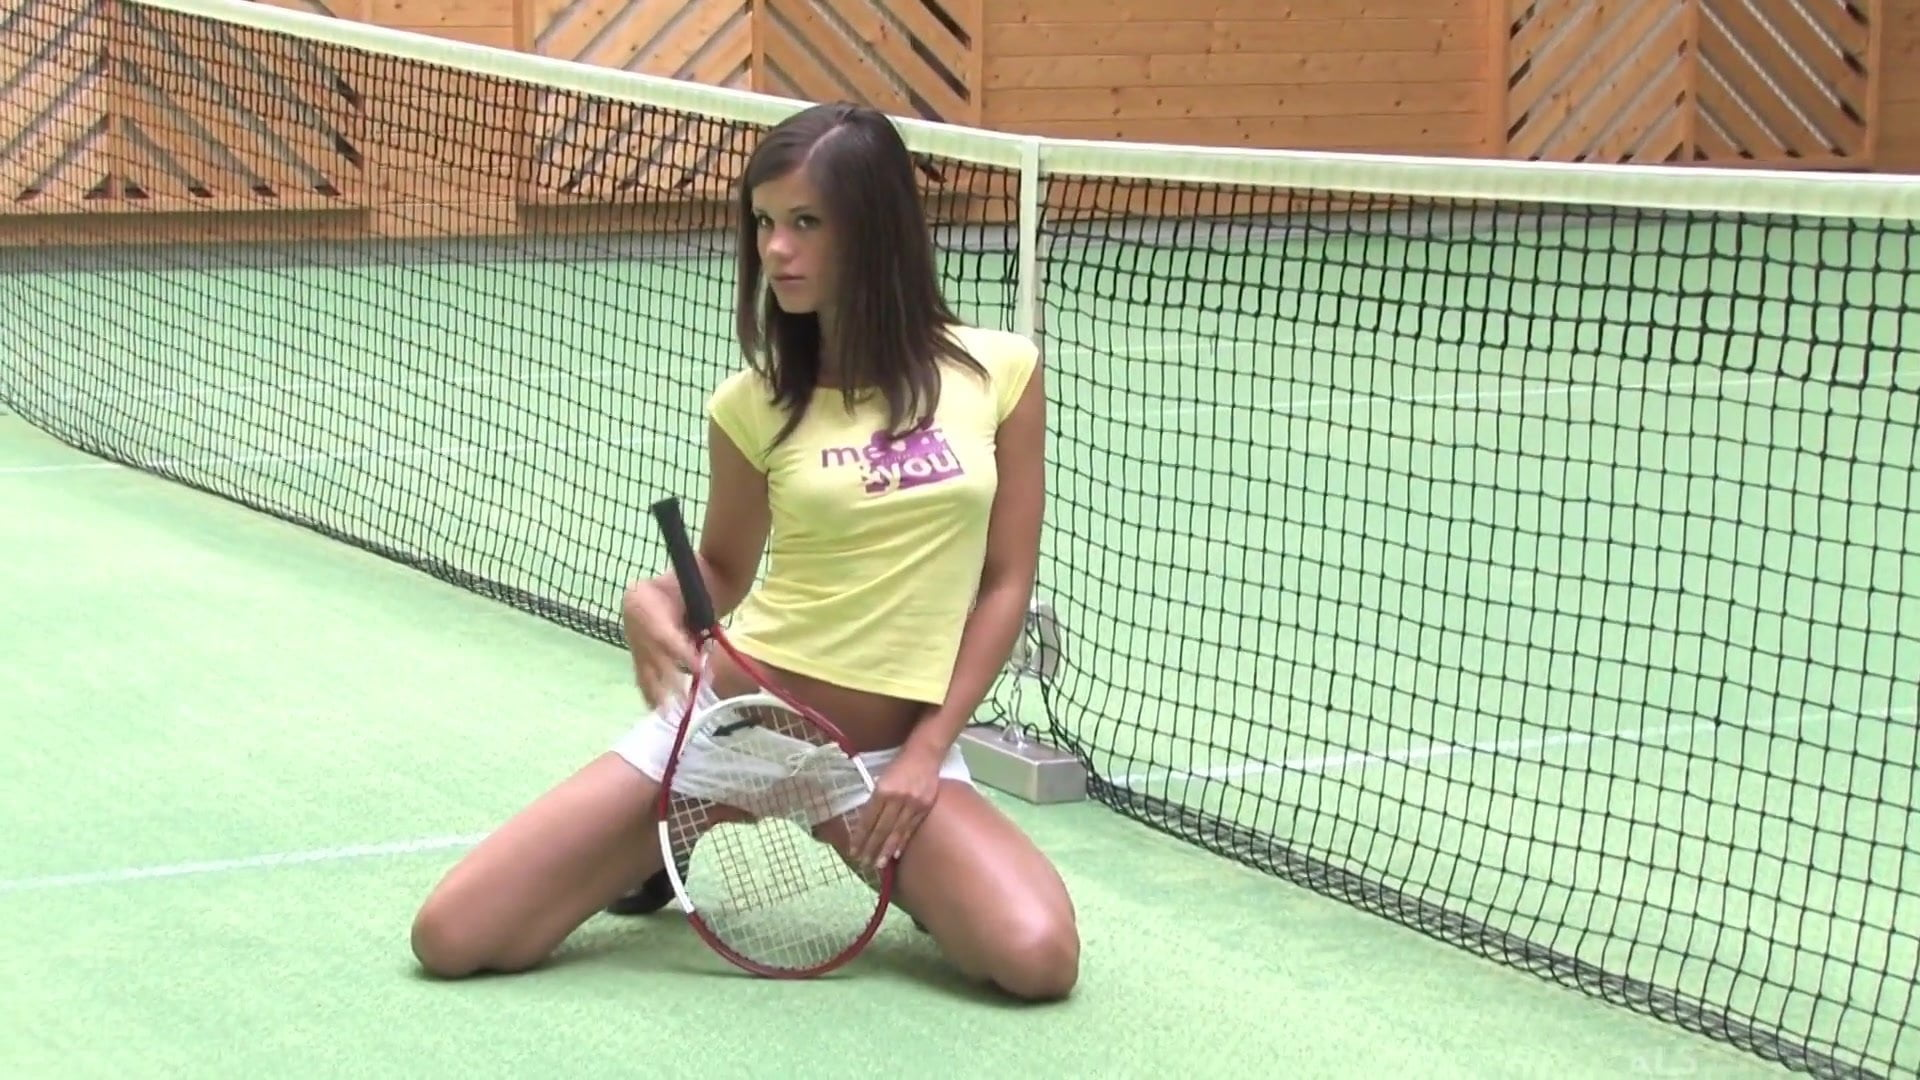 Tennis Little Caprice, Free Blboys Porn Video fb: xHamster jp